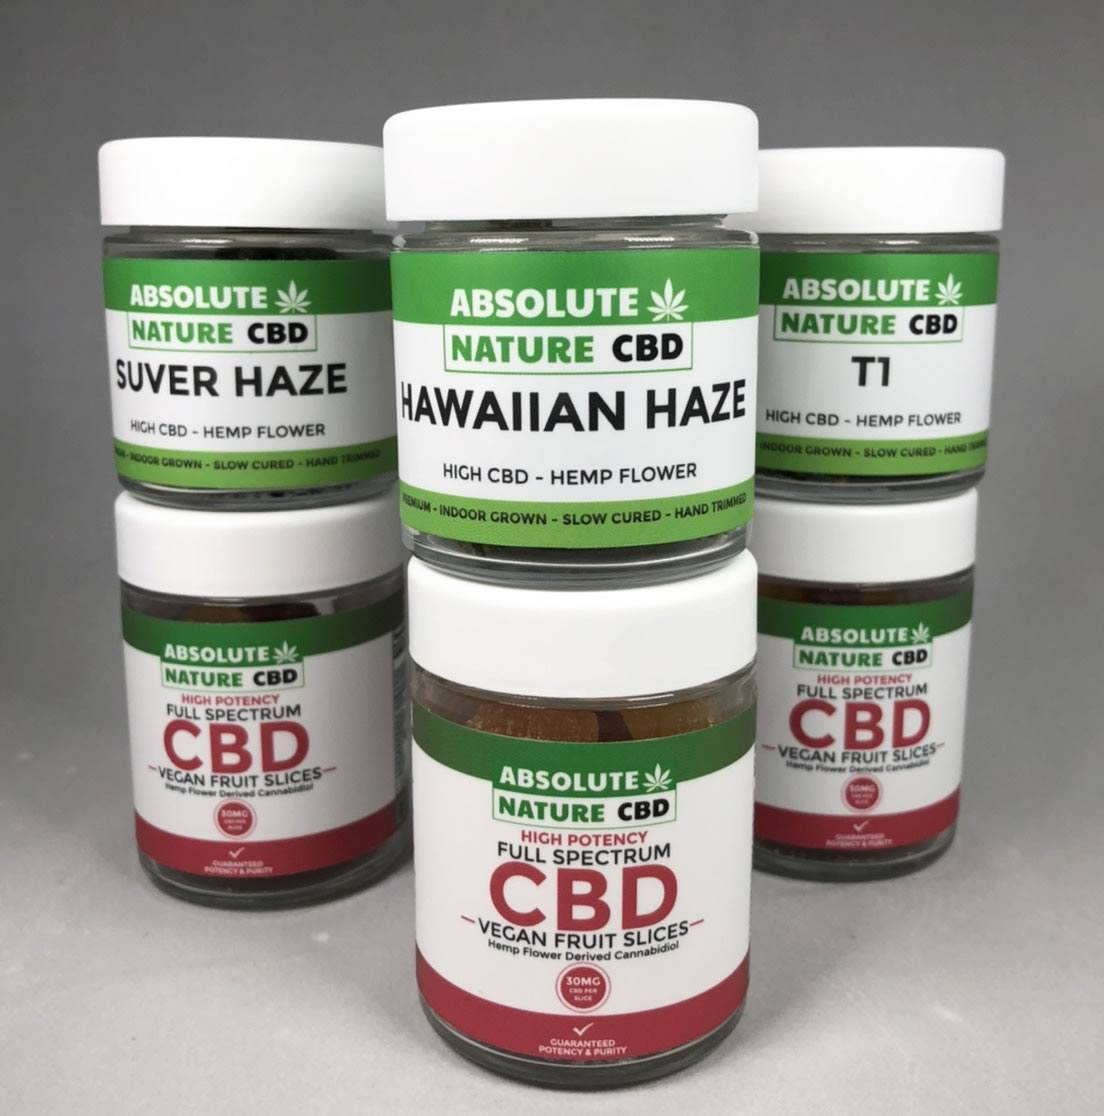 absolute nature cbd prizes